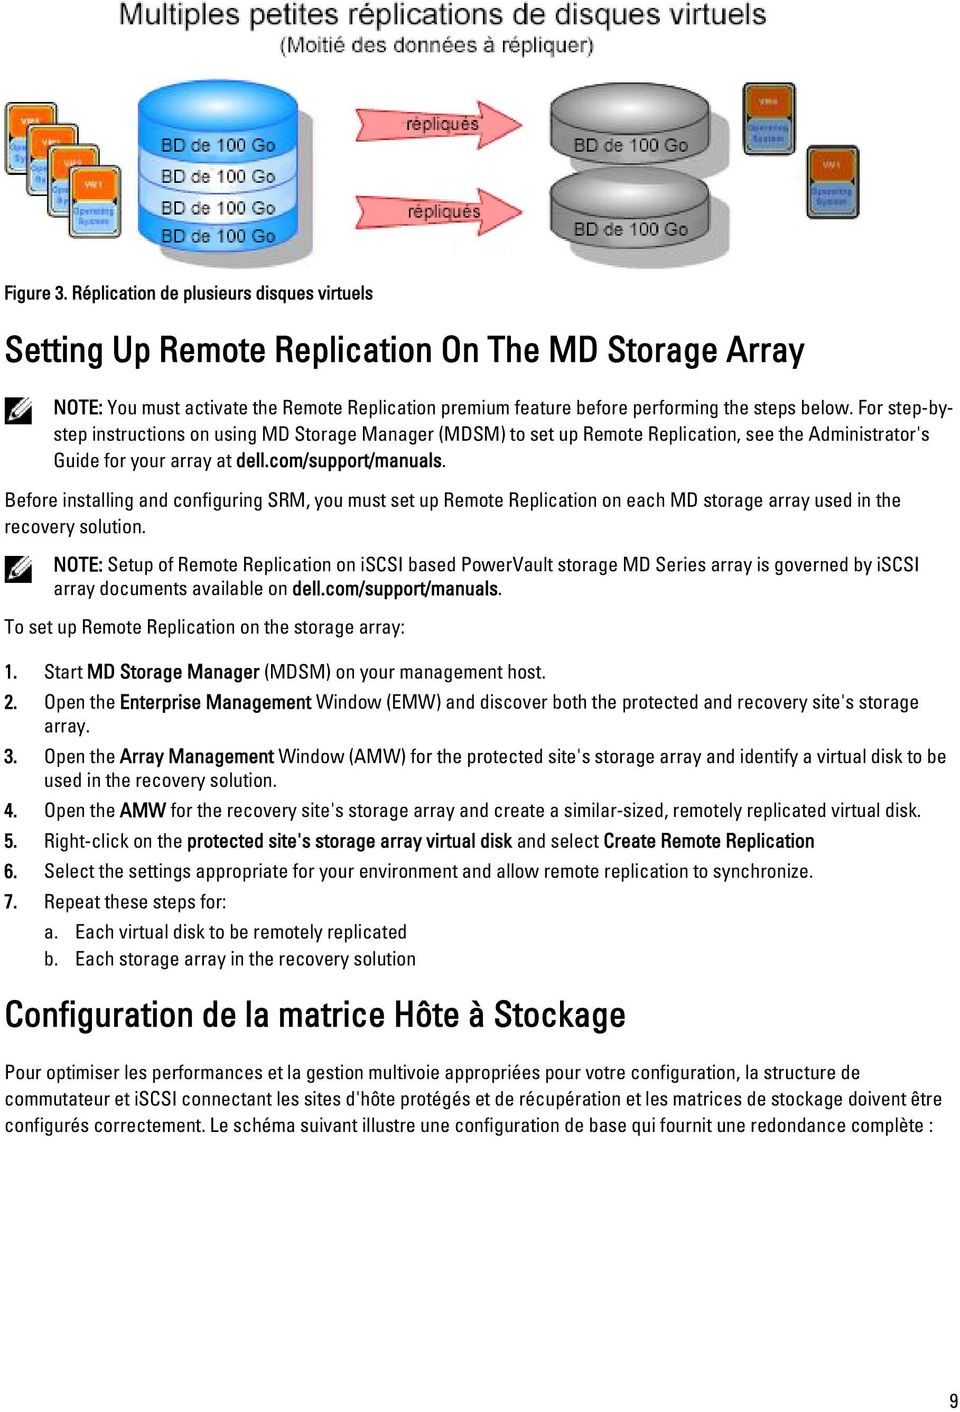 For step-bystep instructions on using MD Storage Manager (MDSM) to set up Remote Replication, see the Administrator's Guide for your array at dell.com/support/manuals.